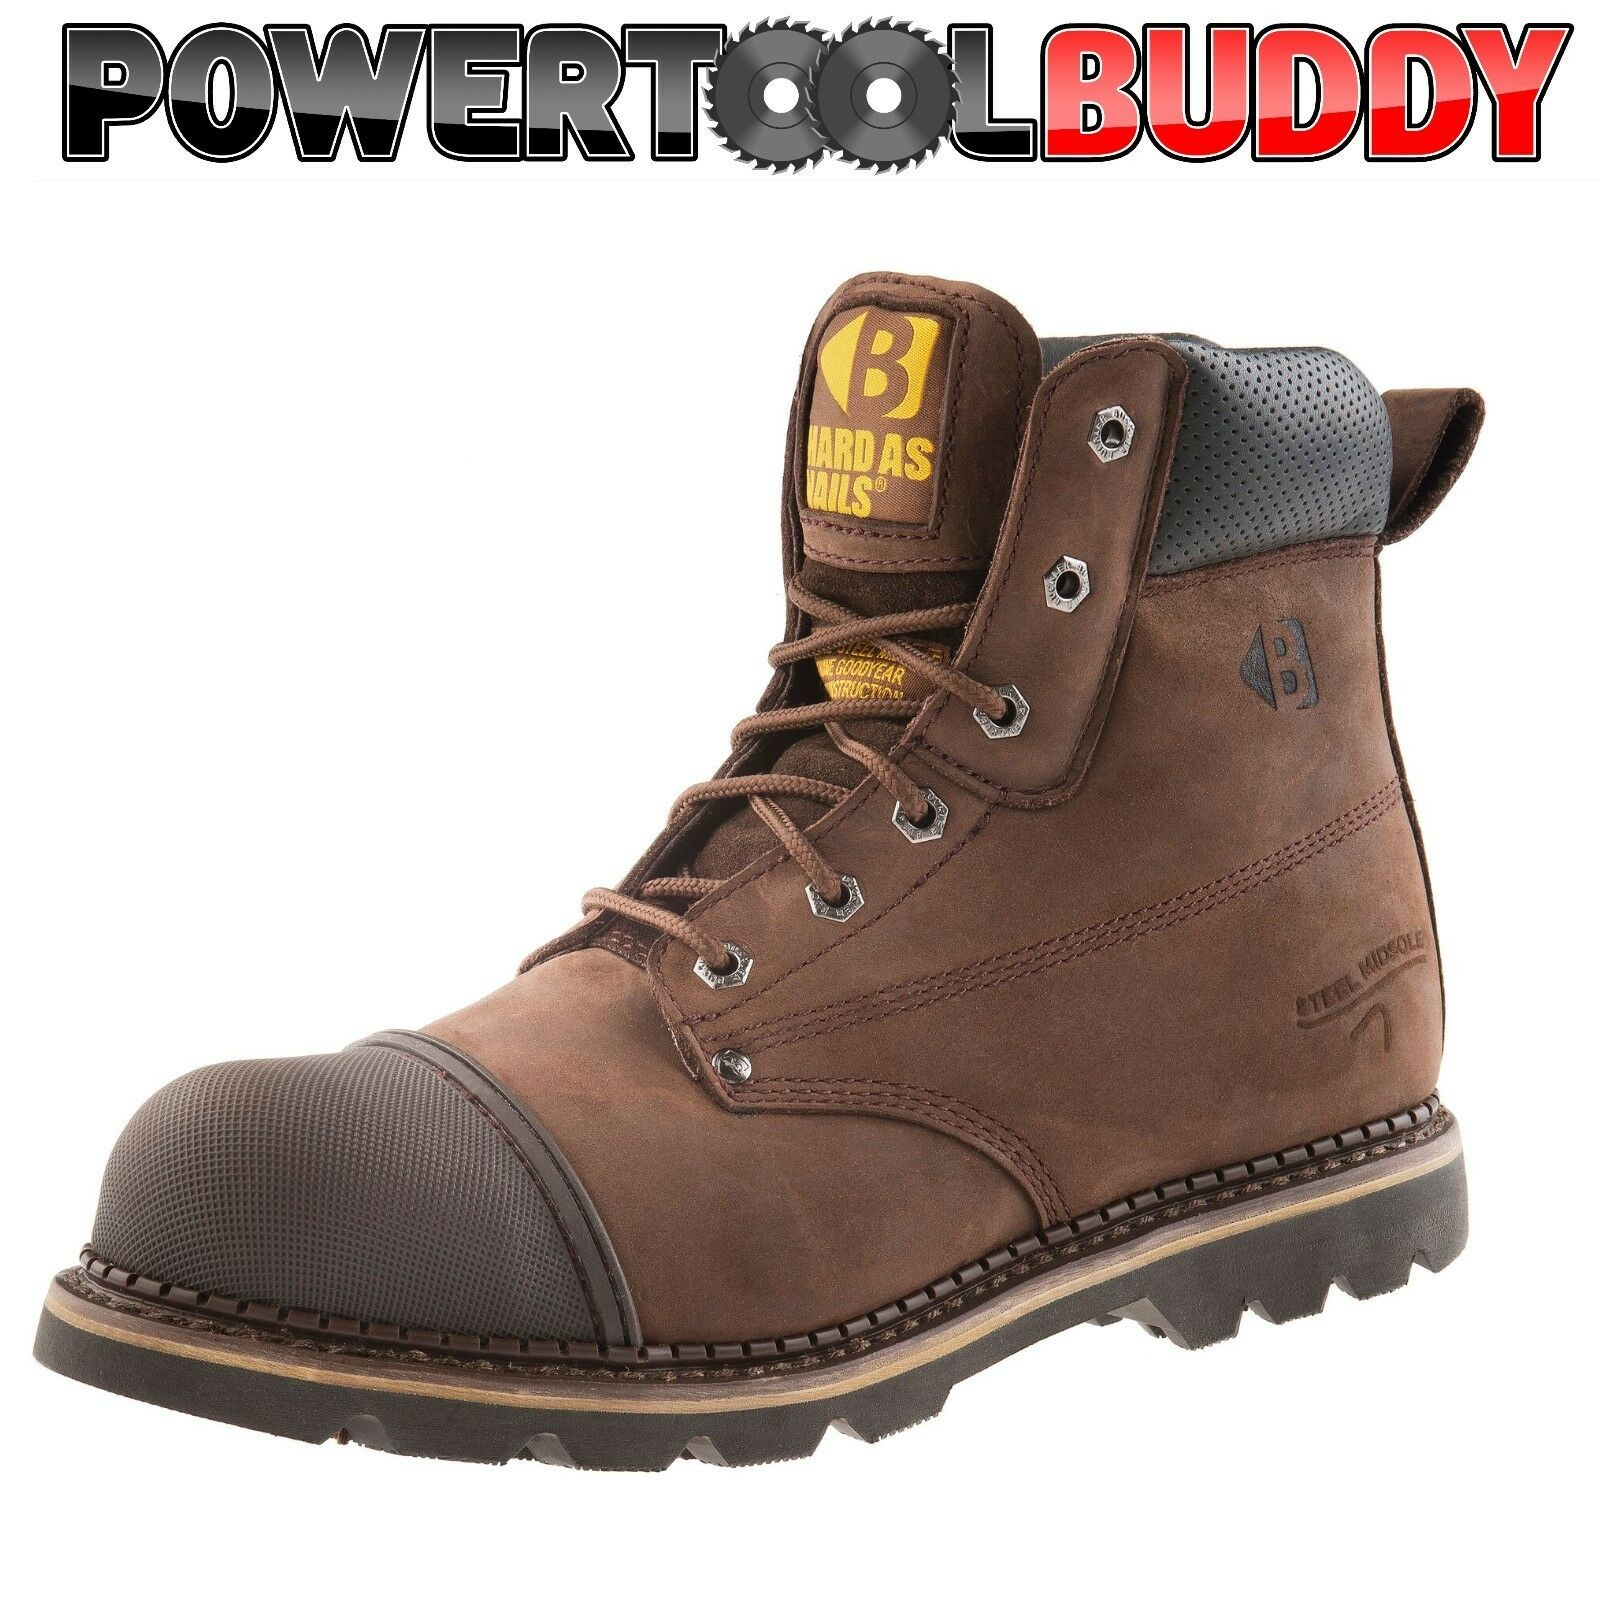 Buckler B301SM Hard As Nails Chocolate Oil Leather safety boot Size 6 - 13